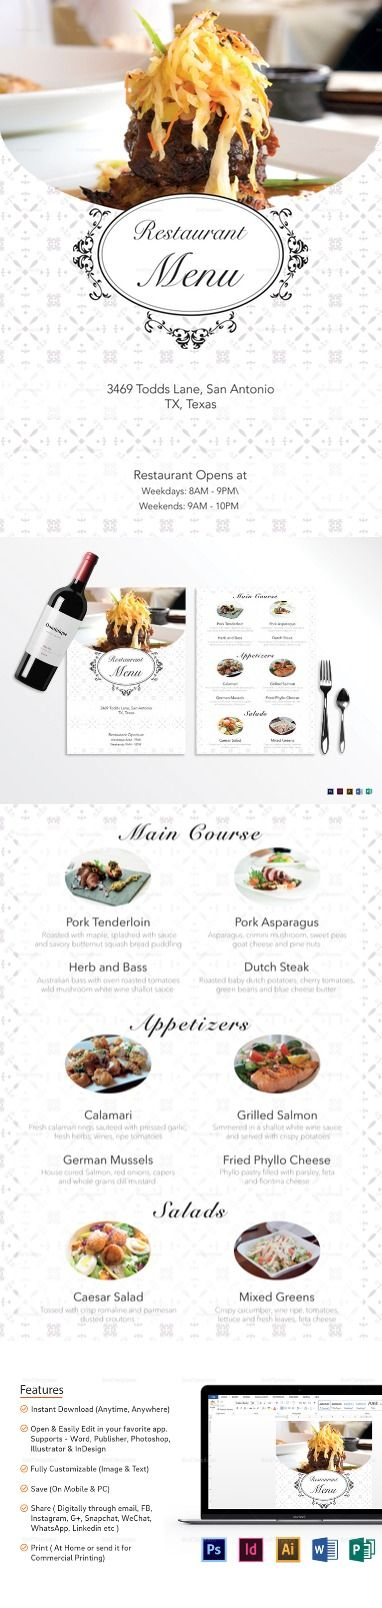 Best Menu Template Word Ideas On Yellowtail Steak  Cafe Menu Template Word